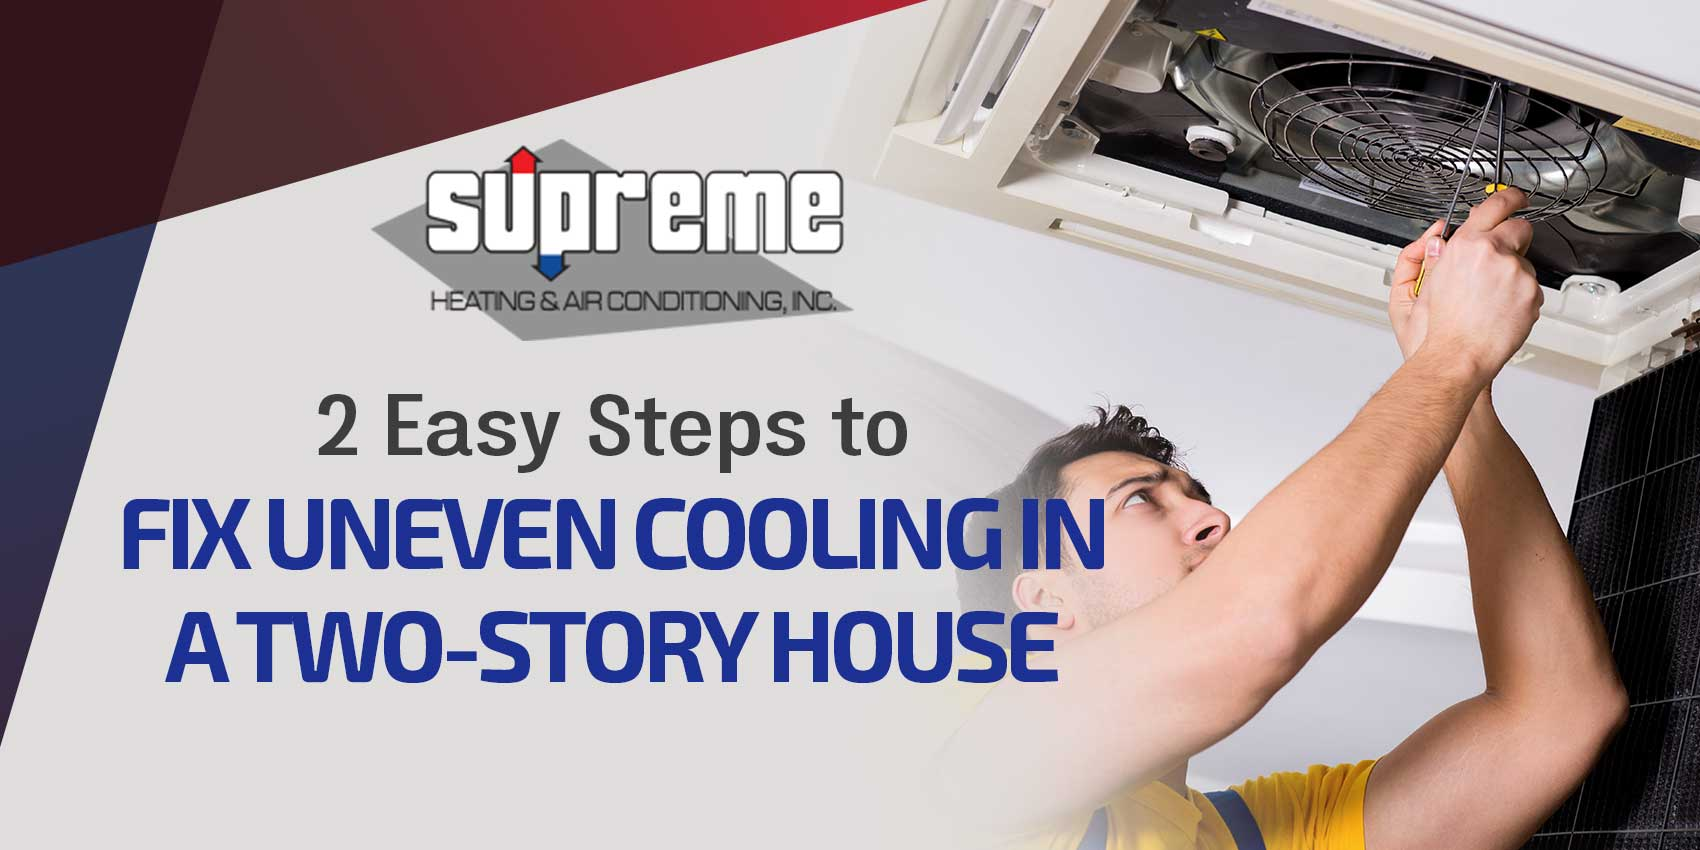 2 Easy Steps to Fix Uneven Cooling in a Two-Story House